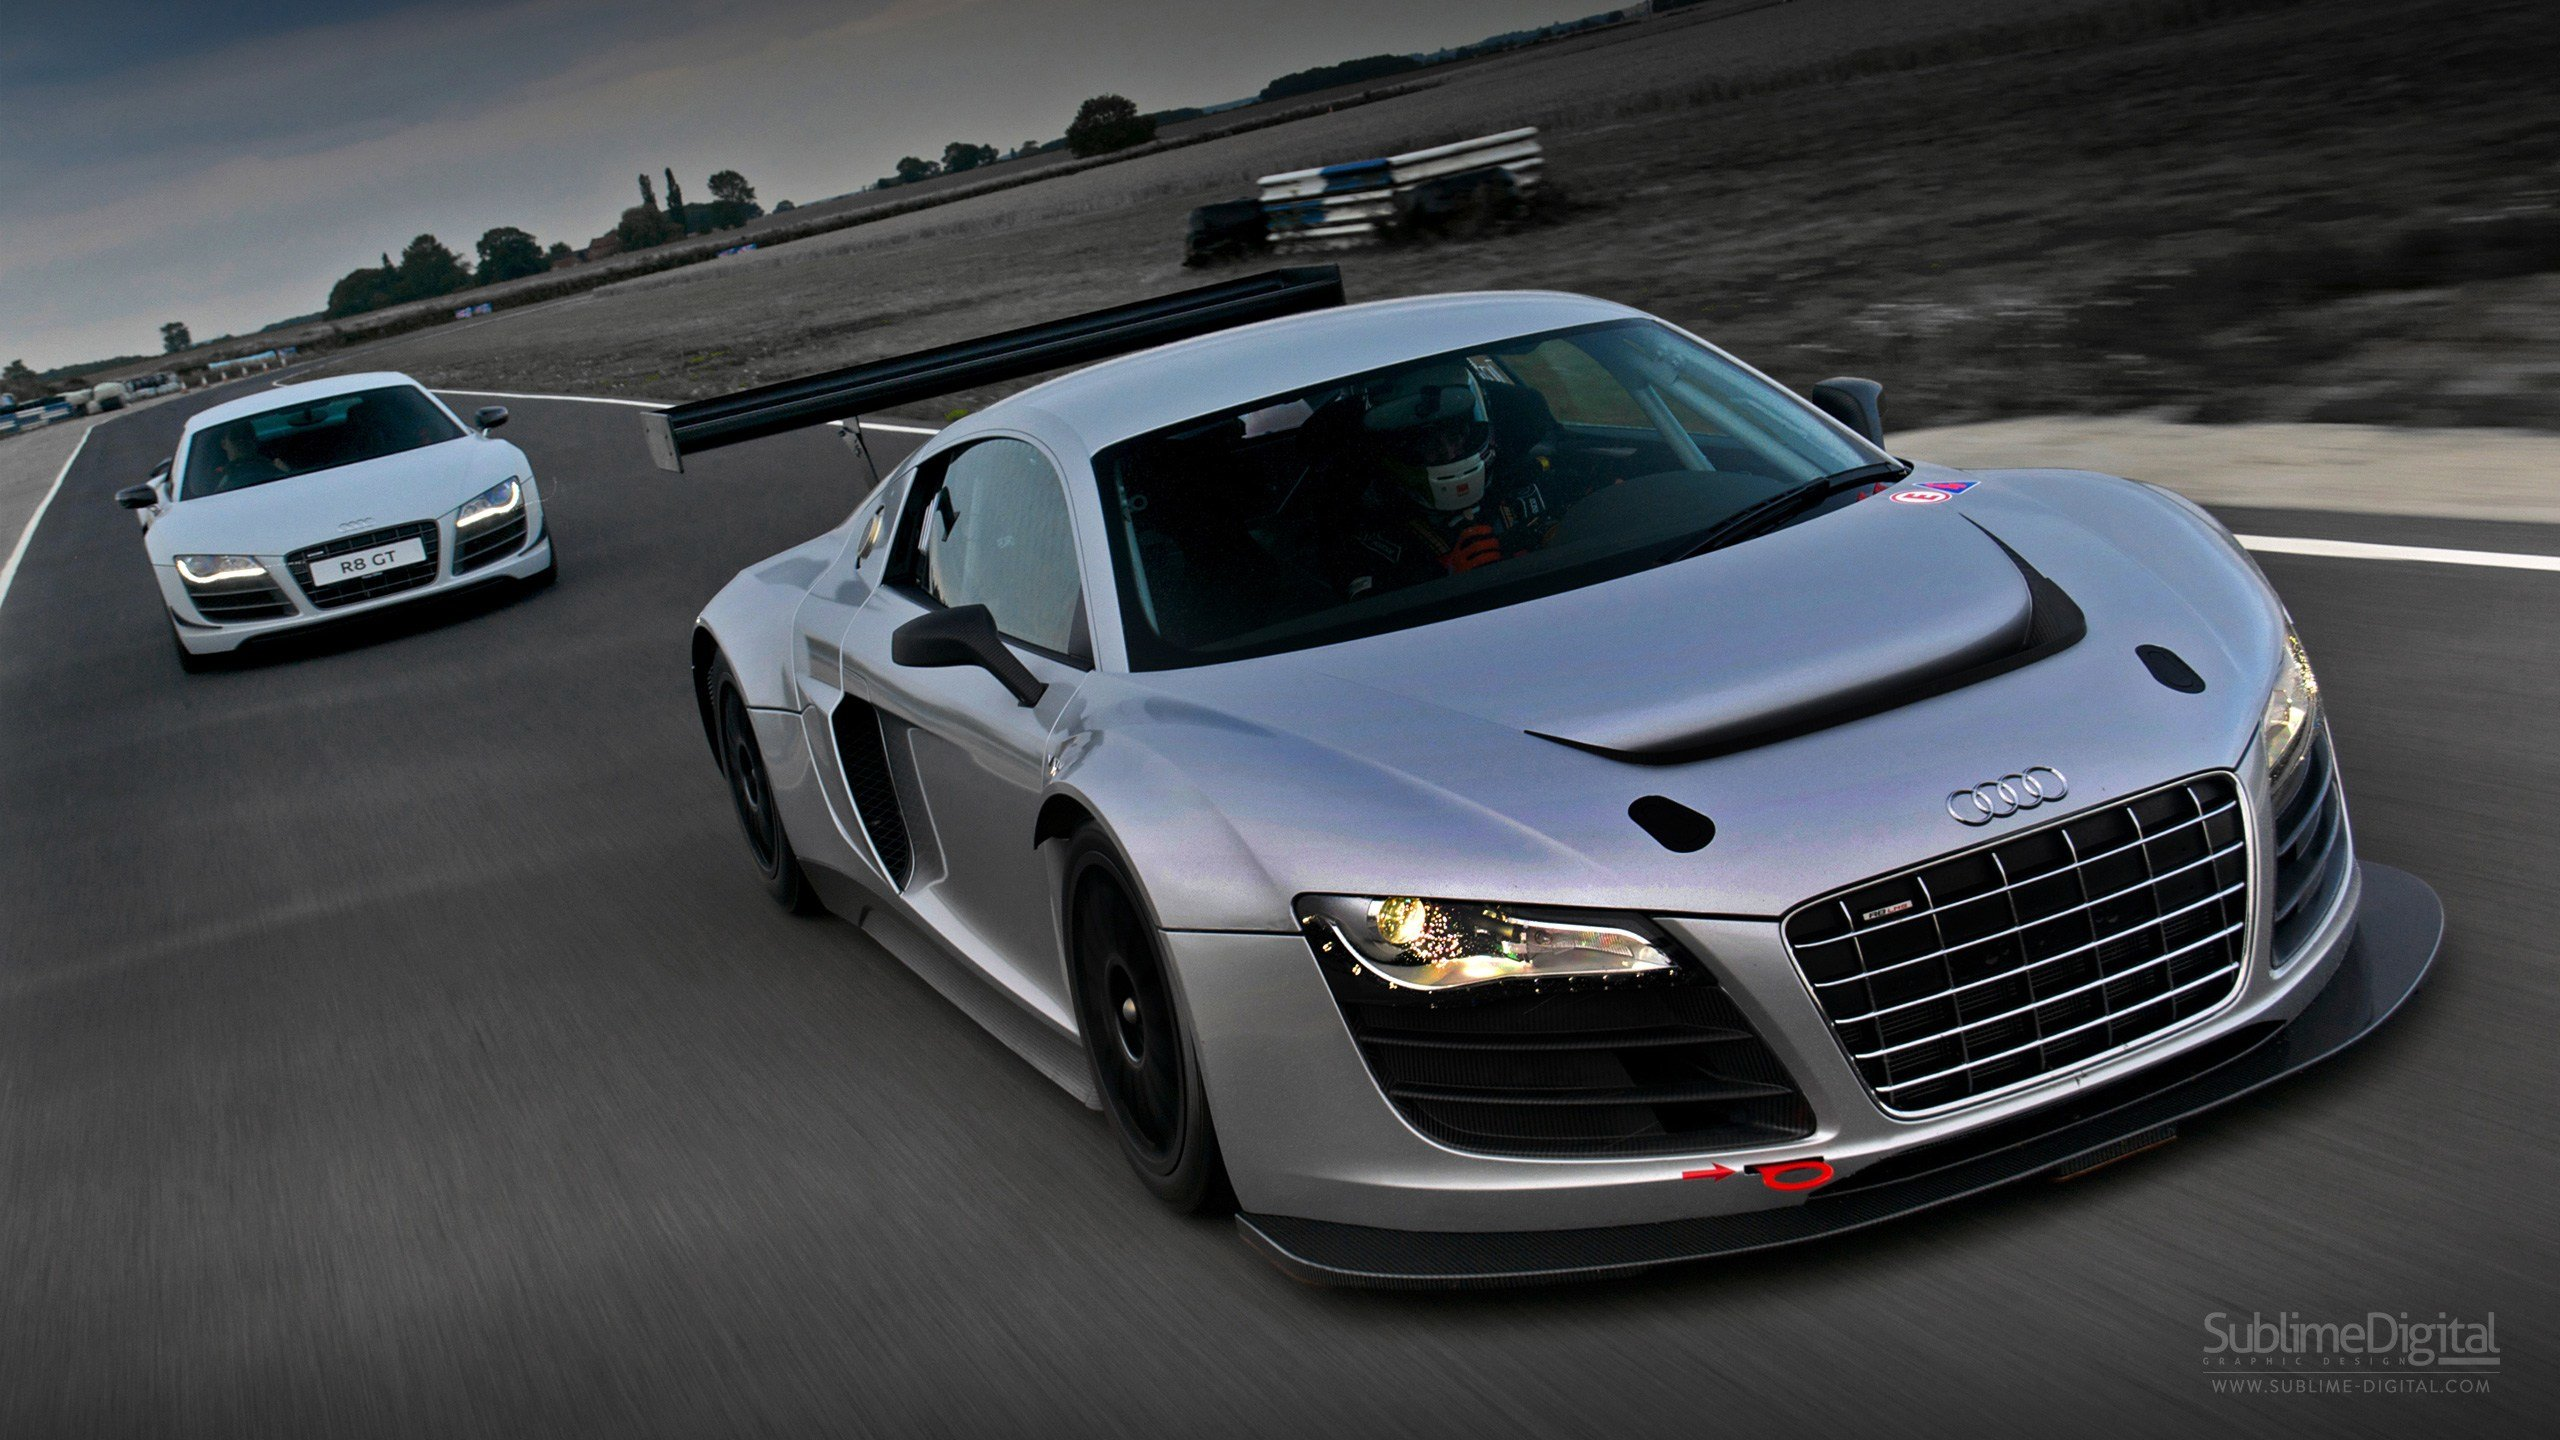 Latest 4K Desktop Wallpaper Cars Audi R8 Ultra Hd Pic Johnywheels Free Download